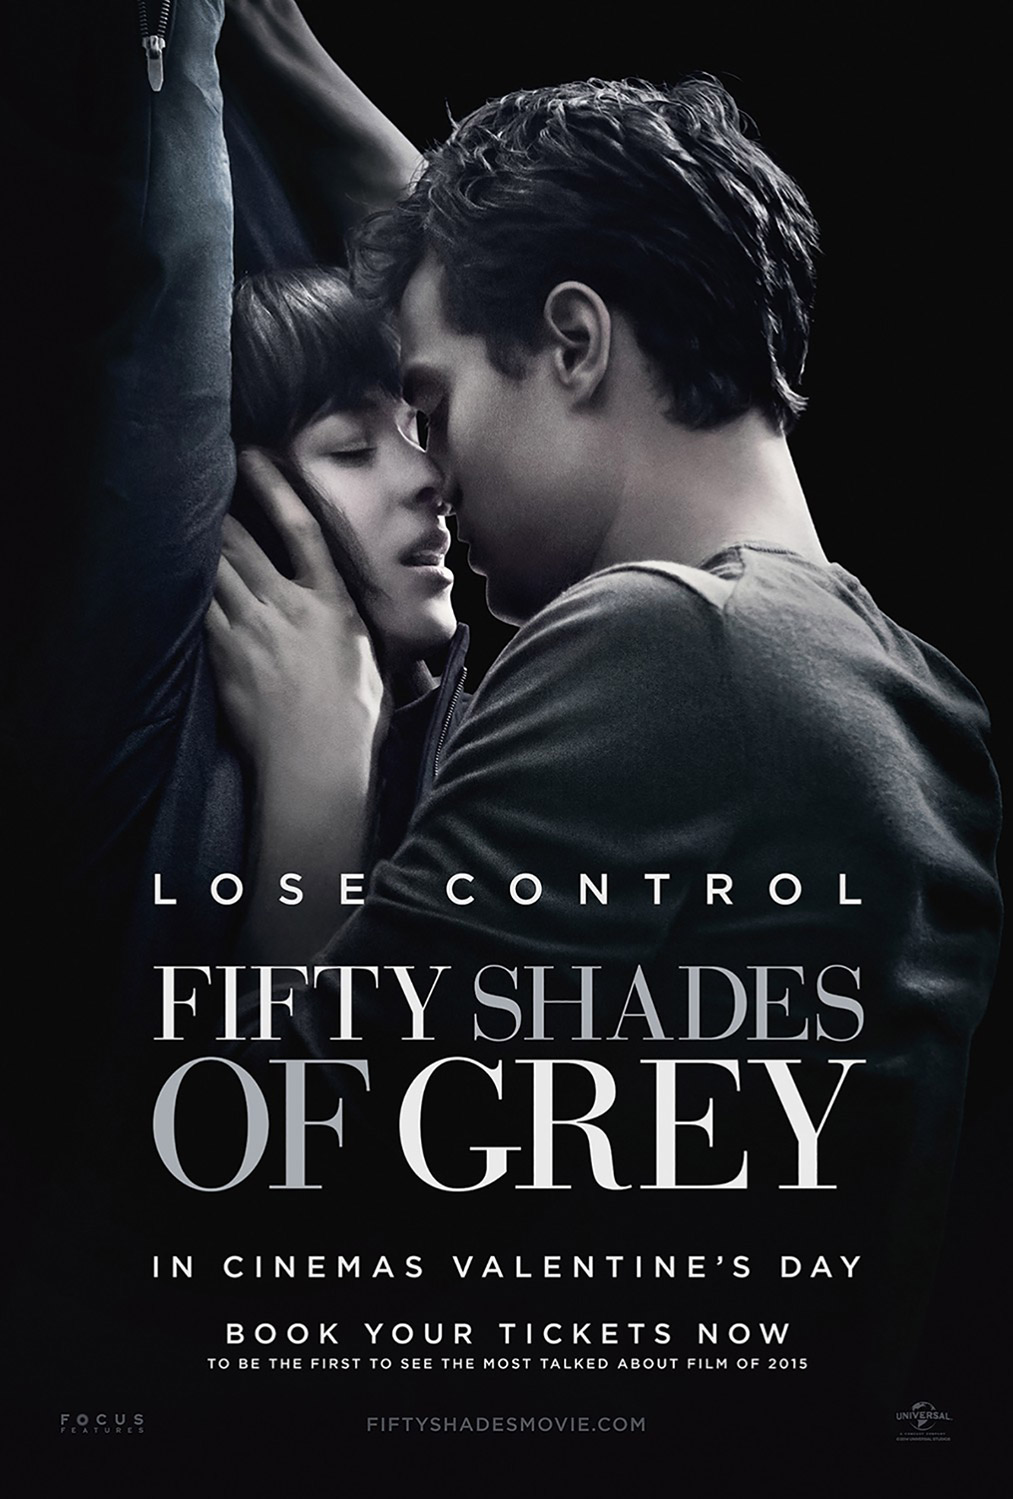 Fifty shades of grey 2015 news clips quotes trivia for 50 shades of grey films